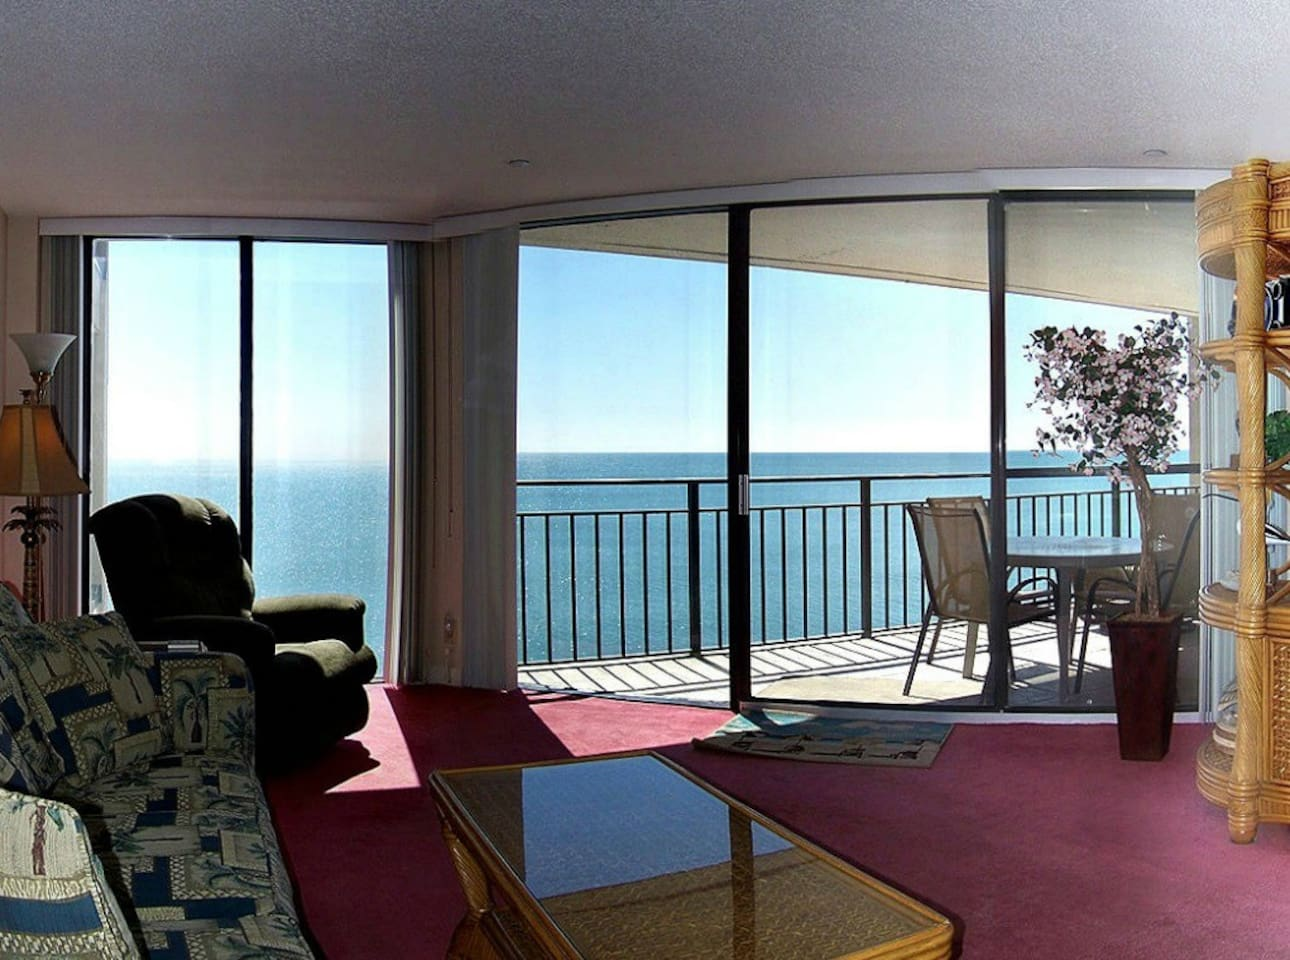 The ocean view is a major focal point of the living space.